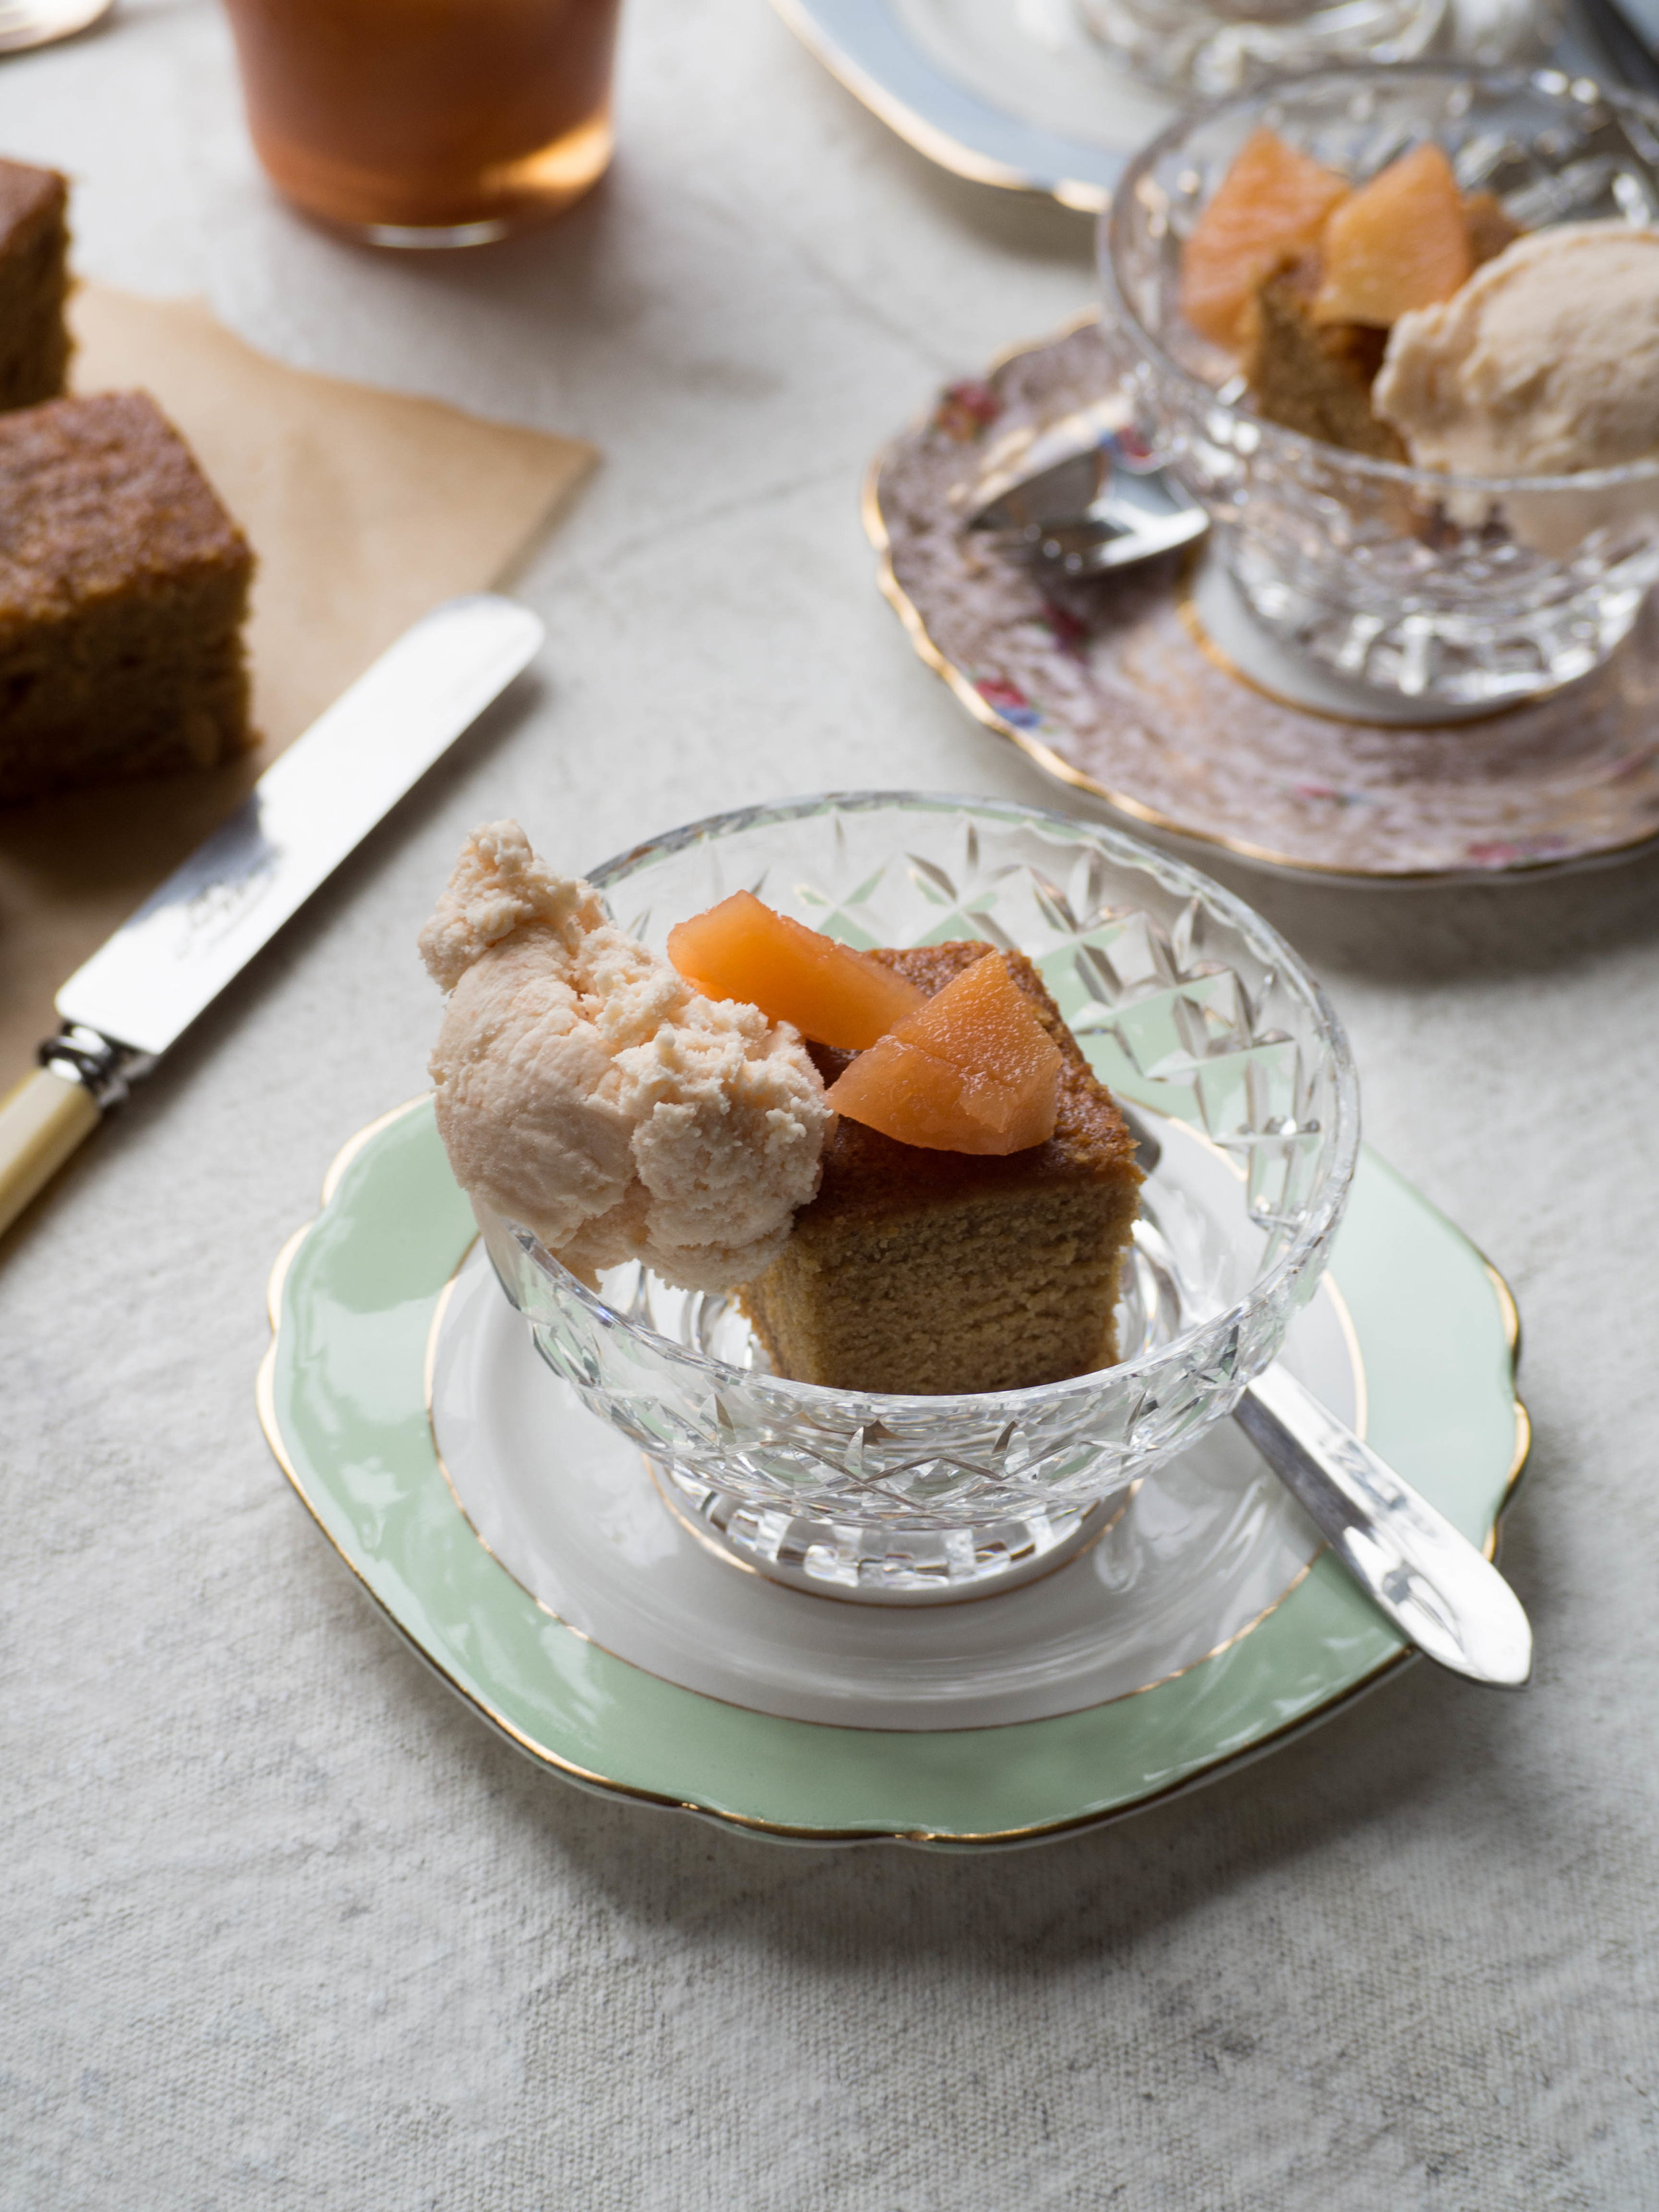 Ginger & Quince Cake with Quince Ice Cream